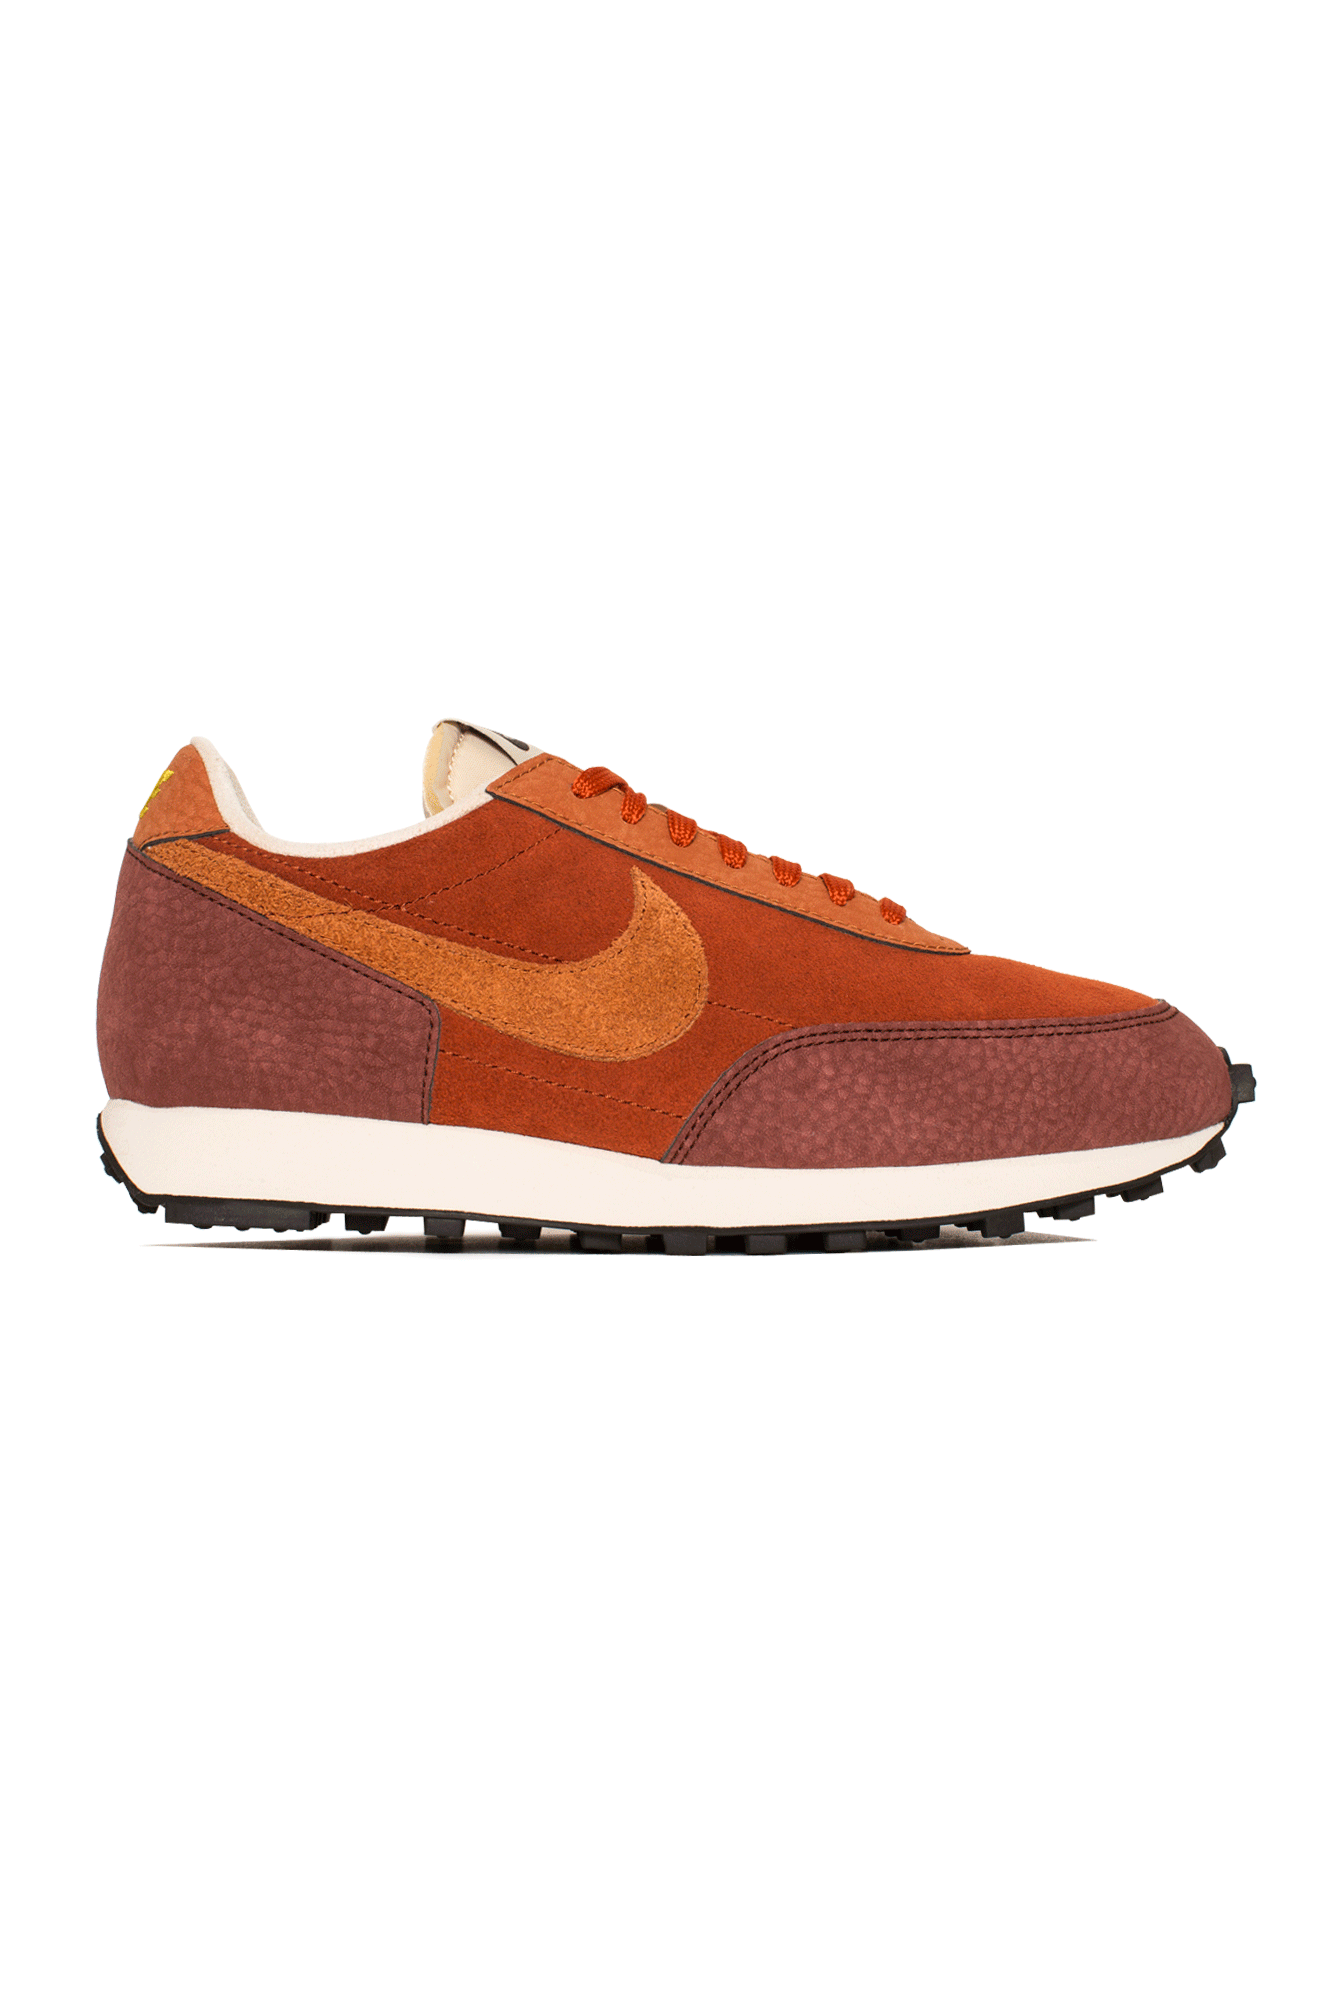 Nike Sneakers Daybreak Arancione CU3016-#000#800#7 - One Block Down